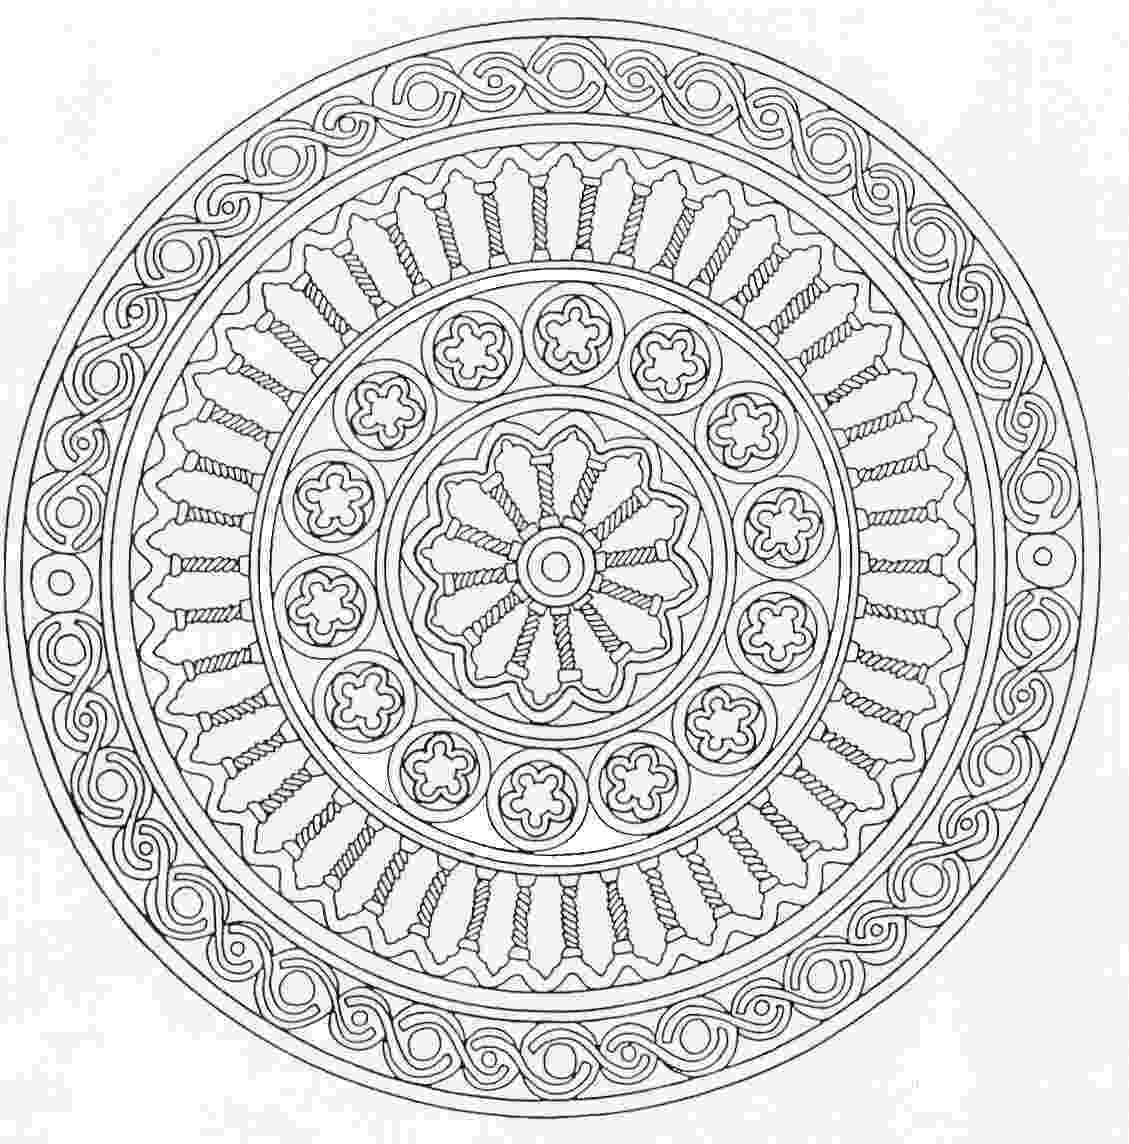 coloring mandalas free printable mandala coloring pages for kids to download and print for free printable free coloring mandalas